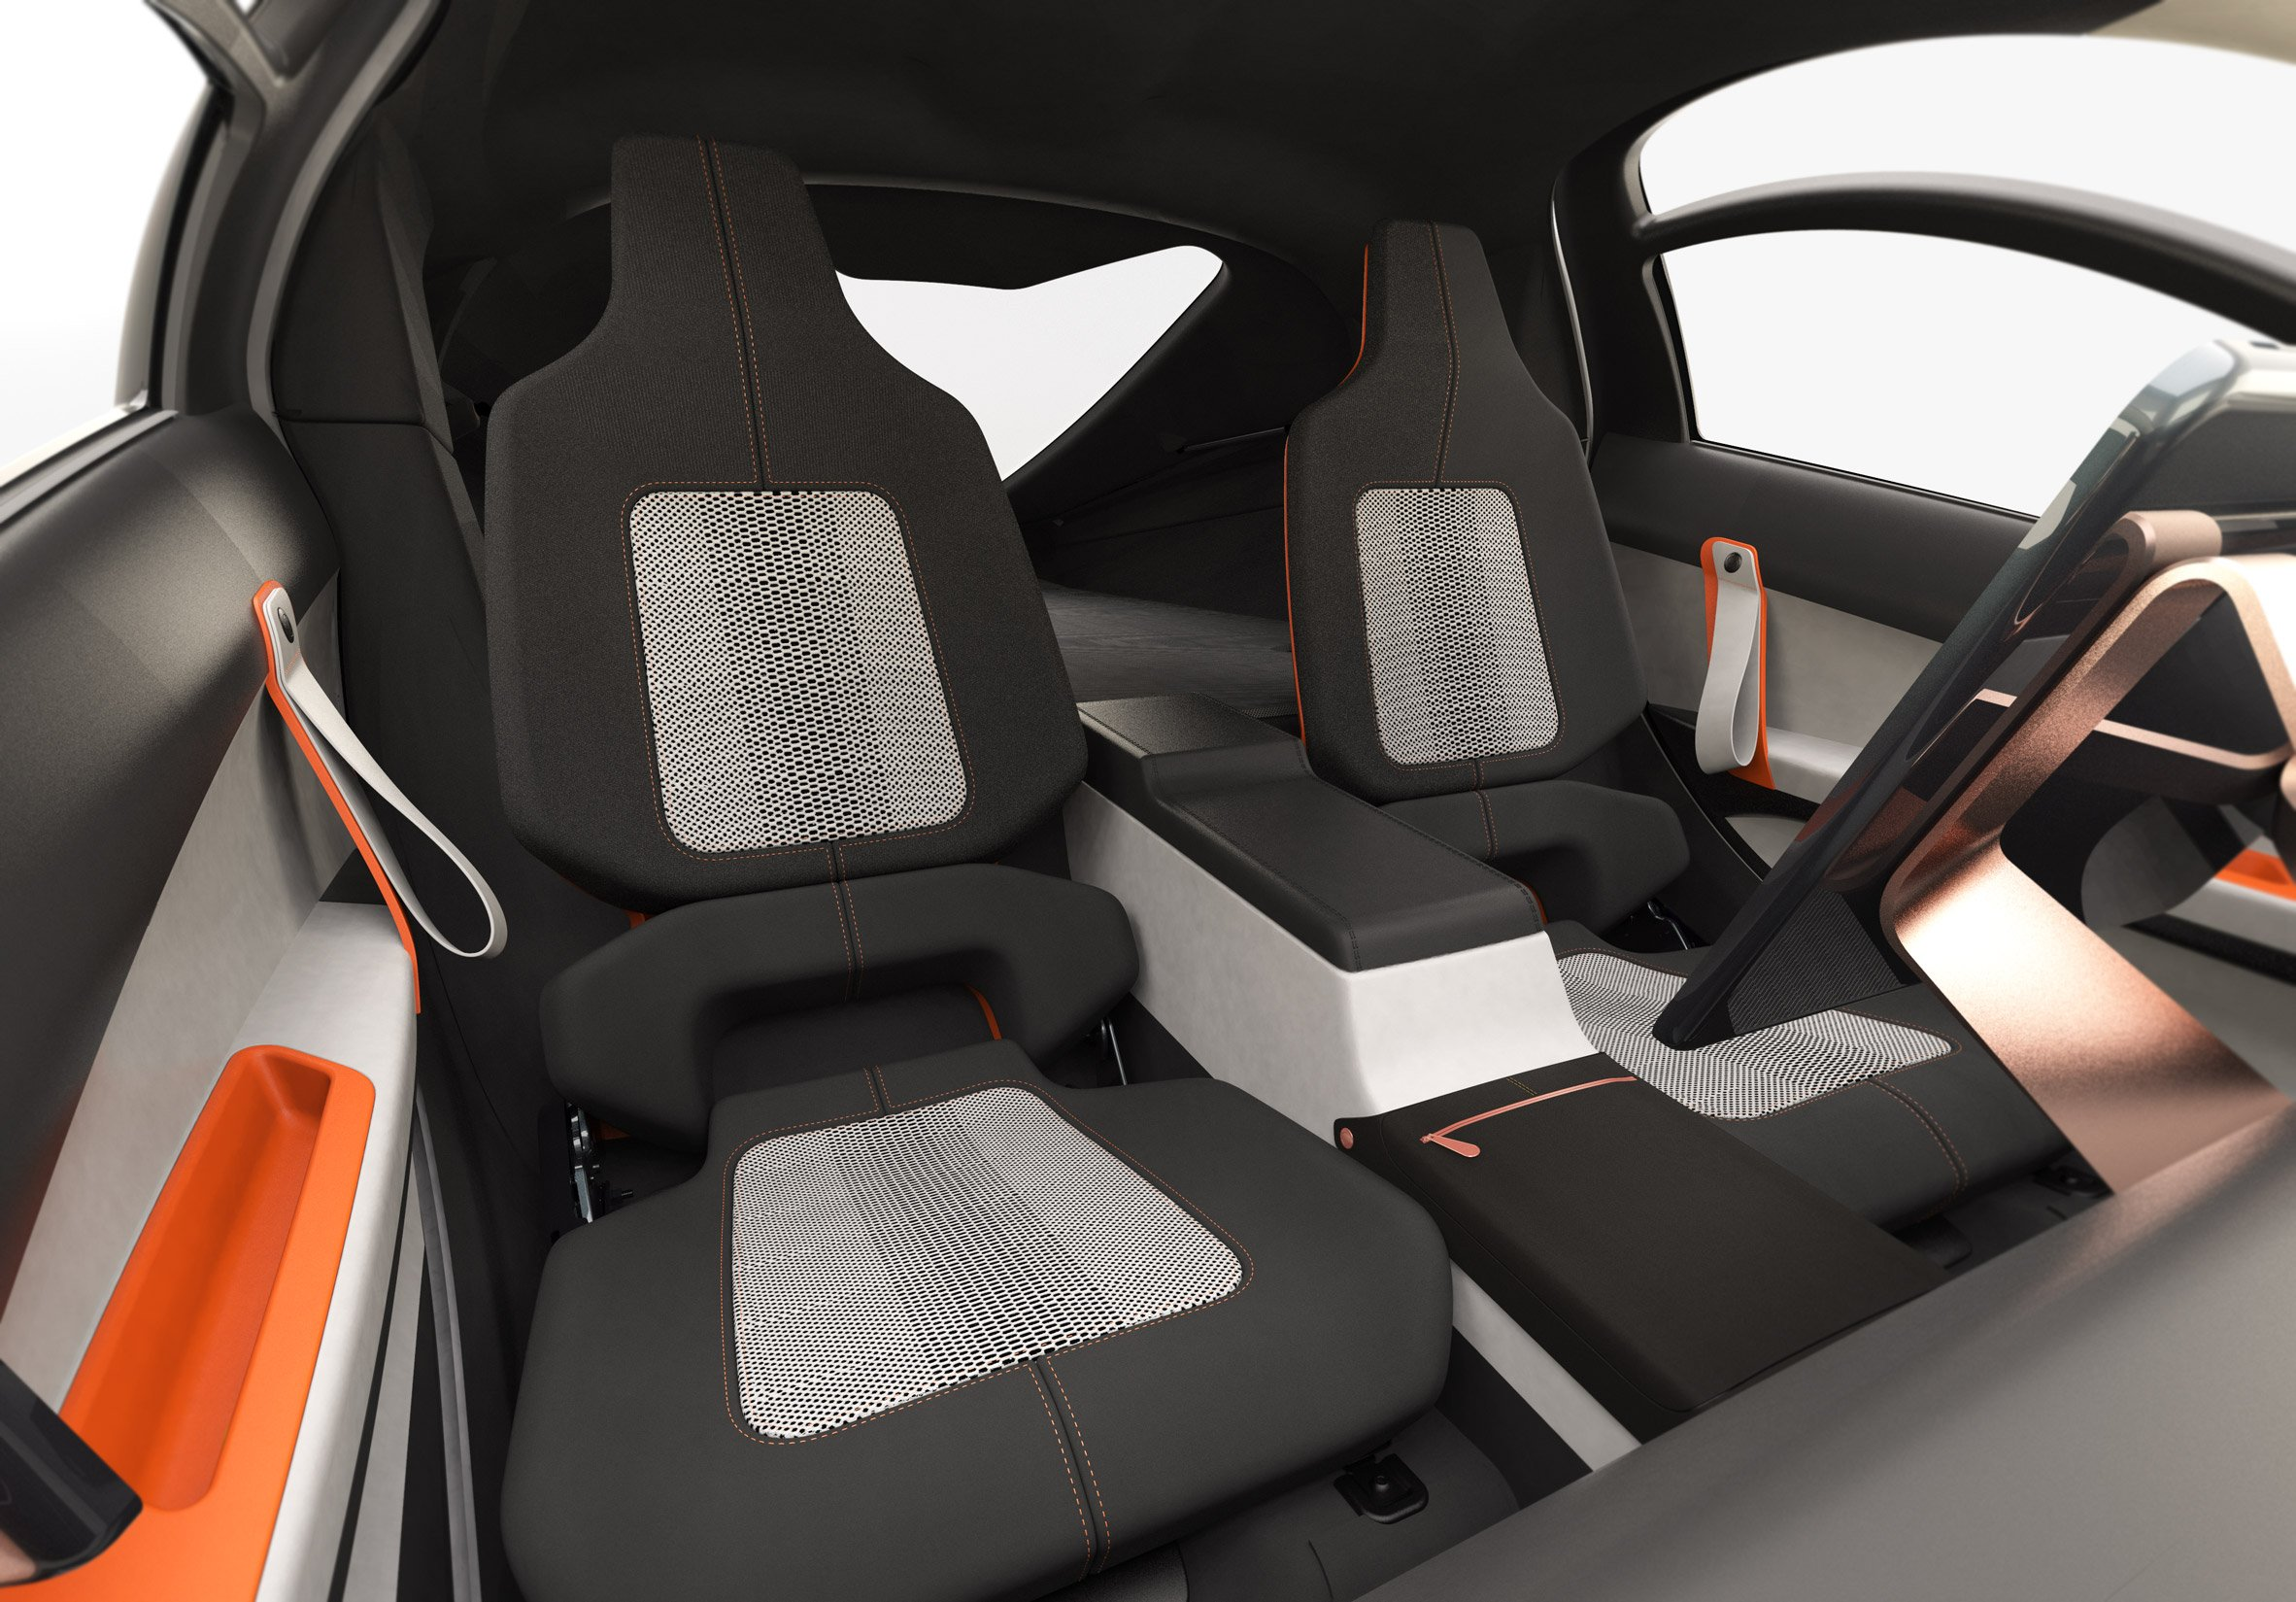 Interior view of the three-wheeled solar and electric Aptera vehicle